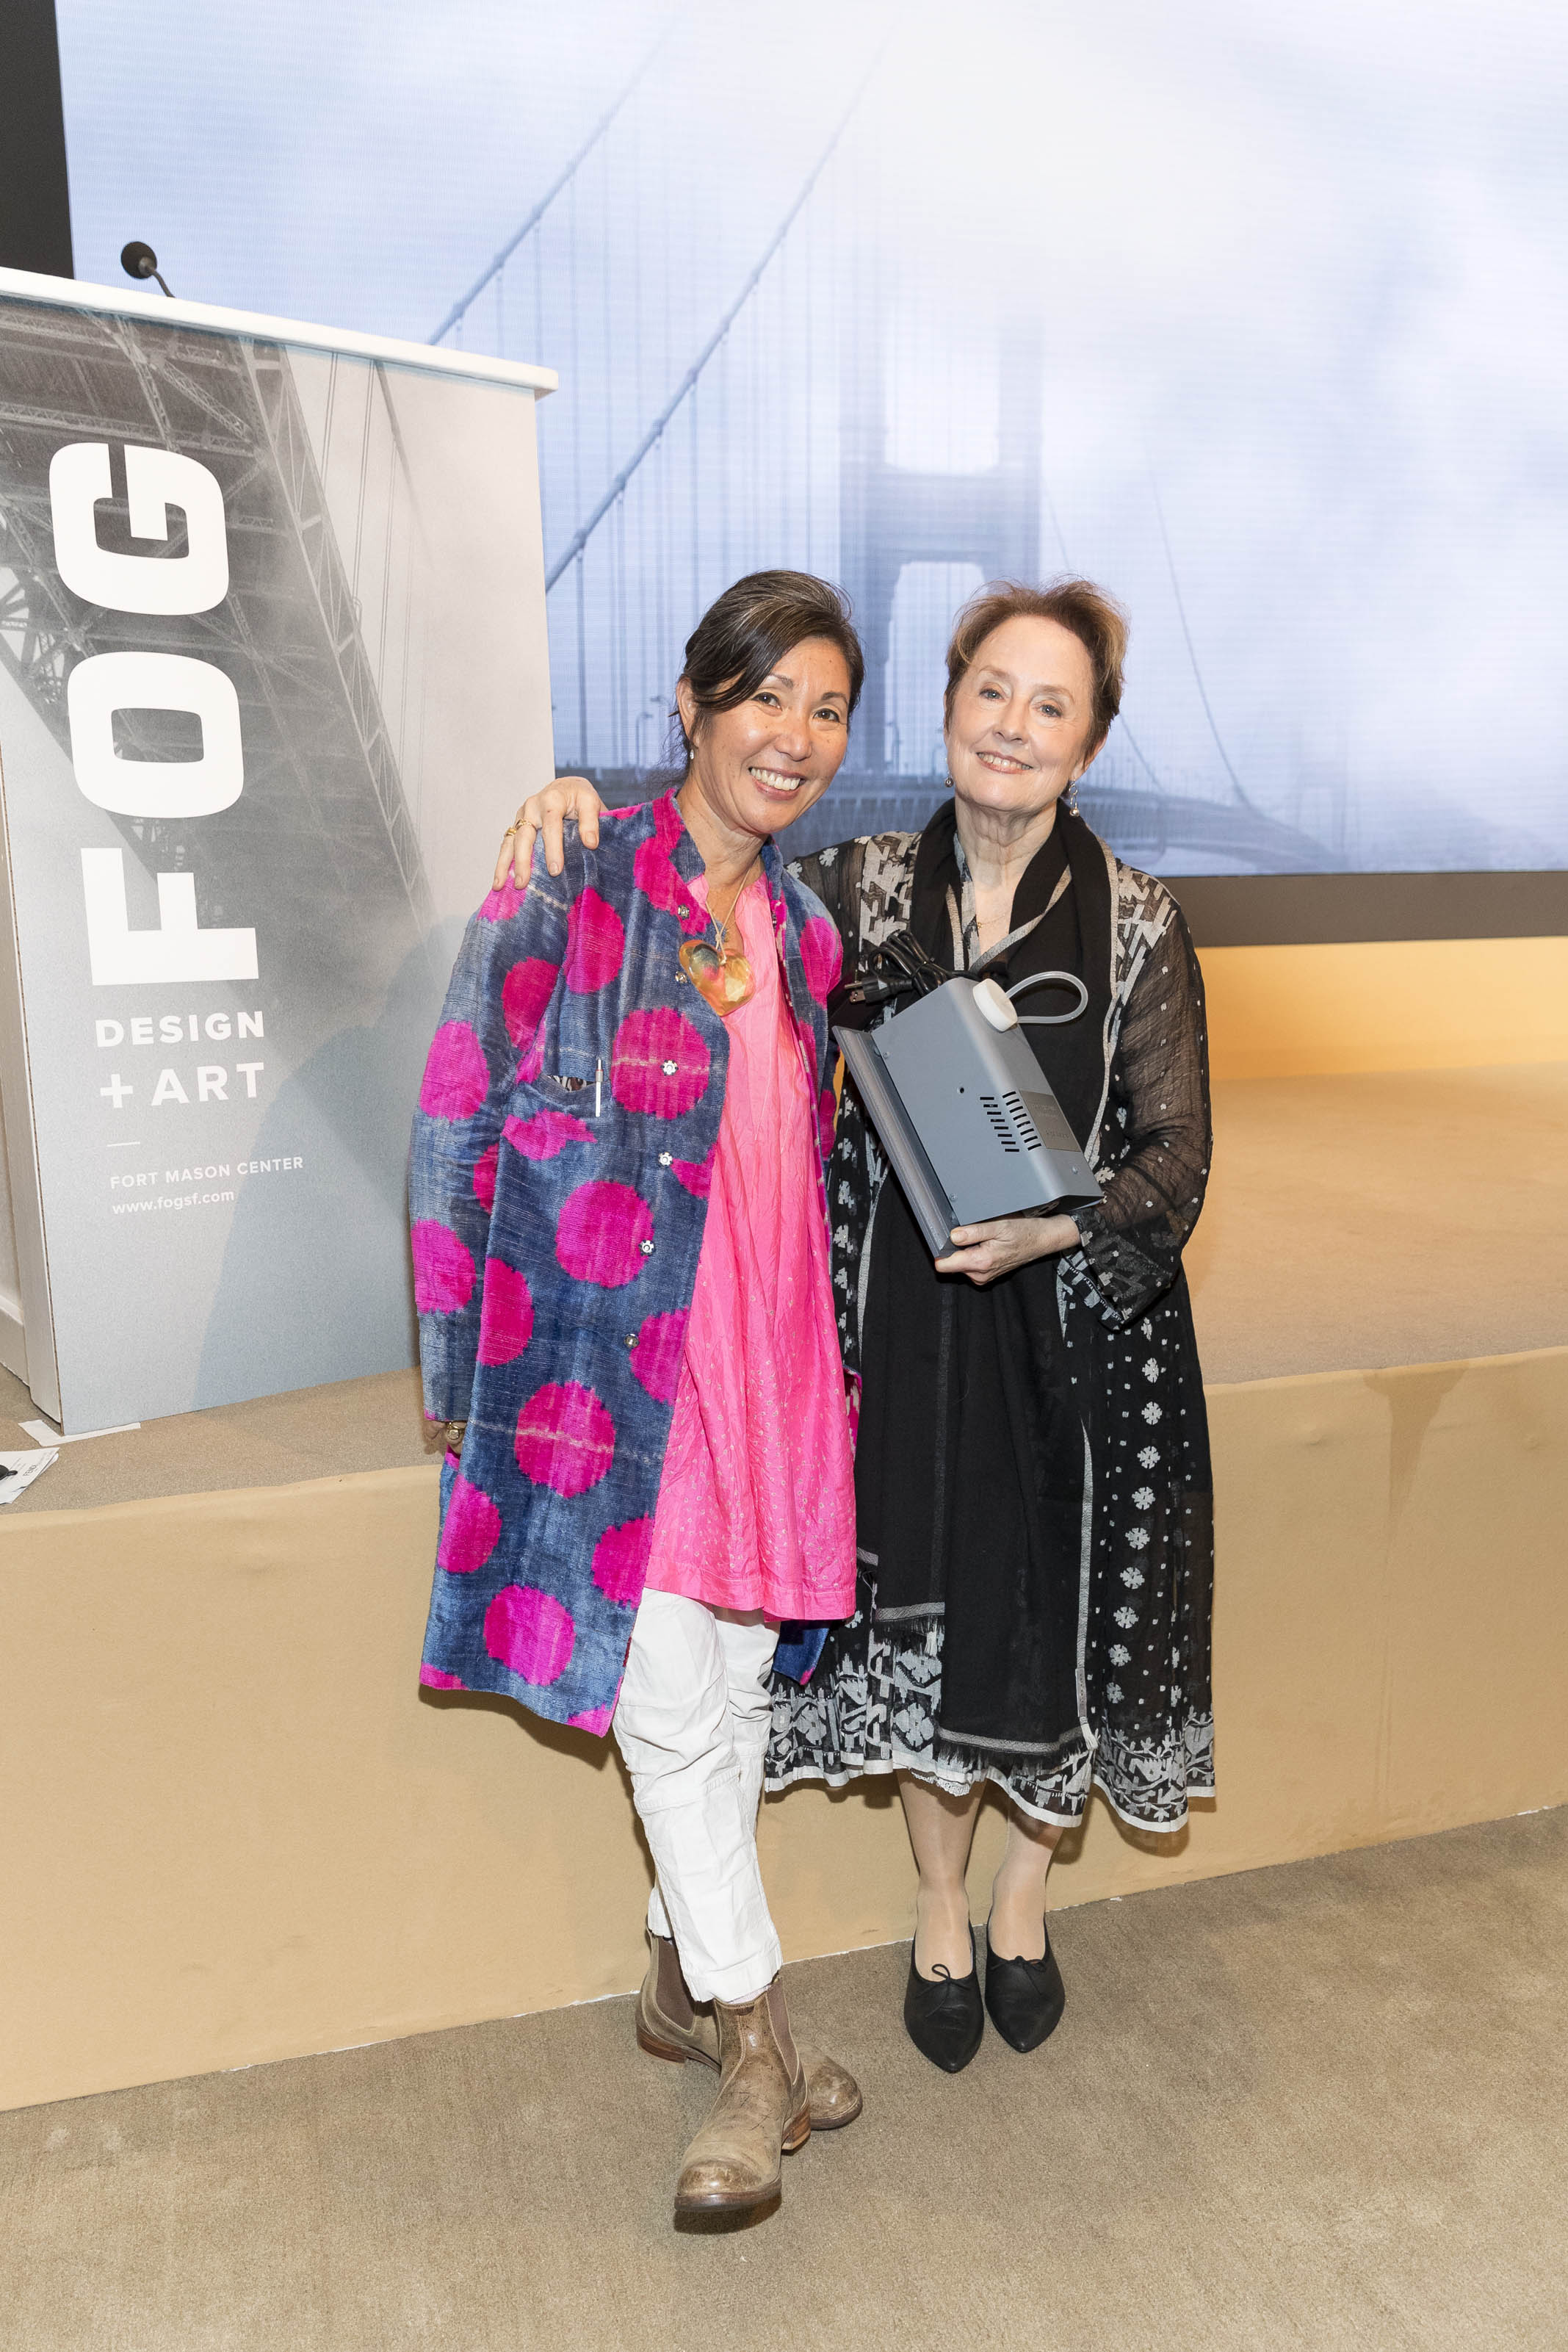 SAN FRANCISCO, CA - January 11 -  Christina Kim and Alice Waters attend Innovators Luncheon - FOG Design+Art on January 11th 2018 at Fort Mason Center in San Francisco, CA (Photo - Drew Altizer)